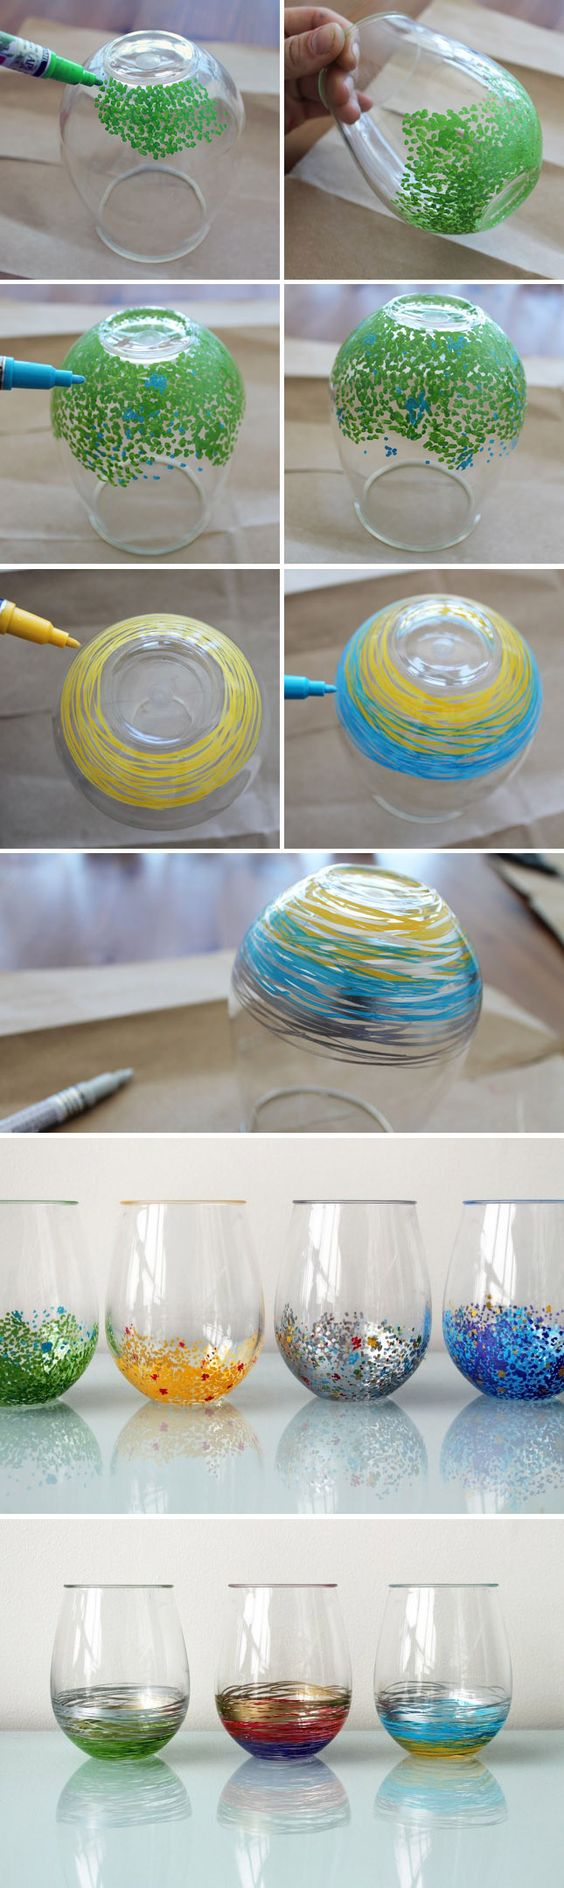 15 painted wine glasses to liven up your meal useful diy for Acrylic paint for glassware